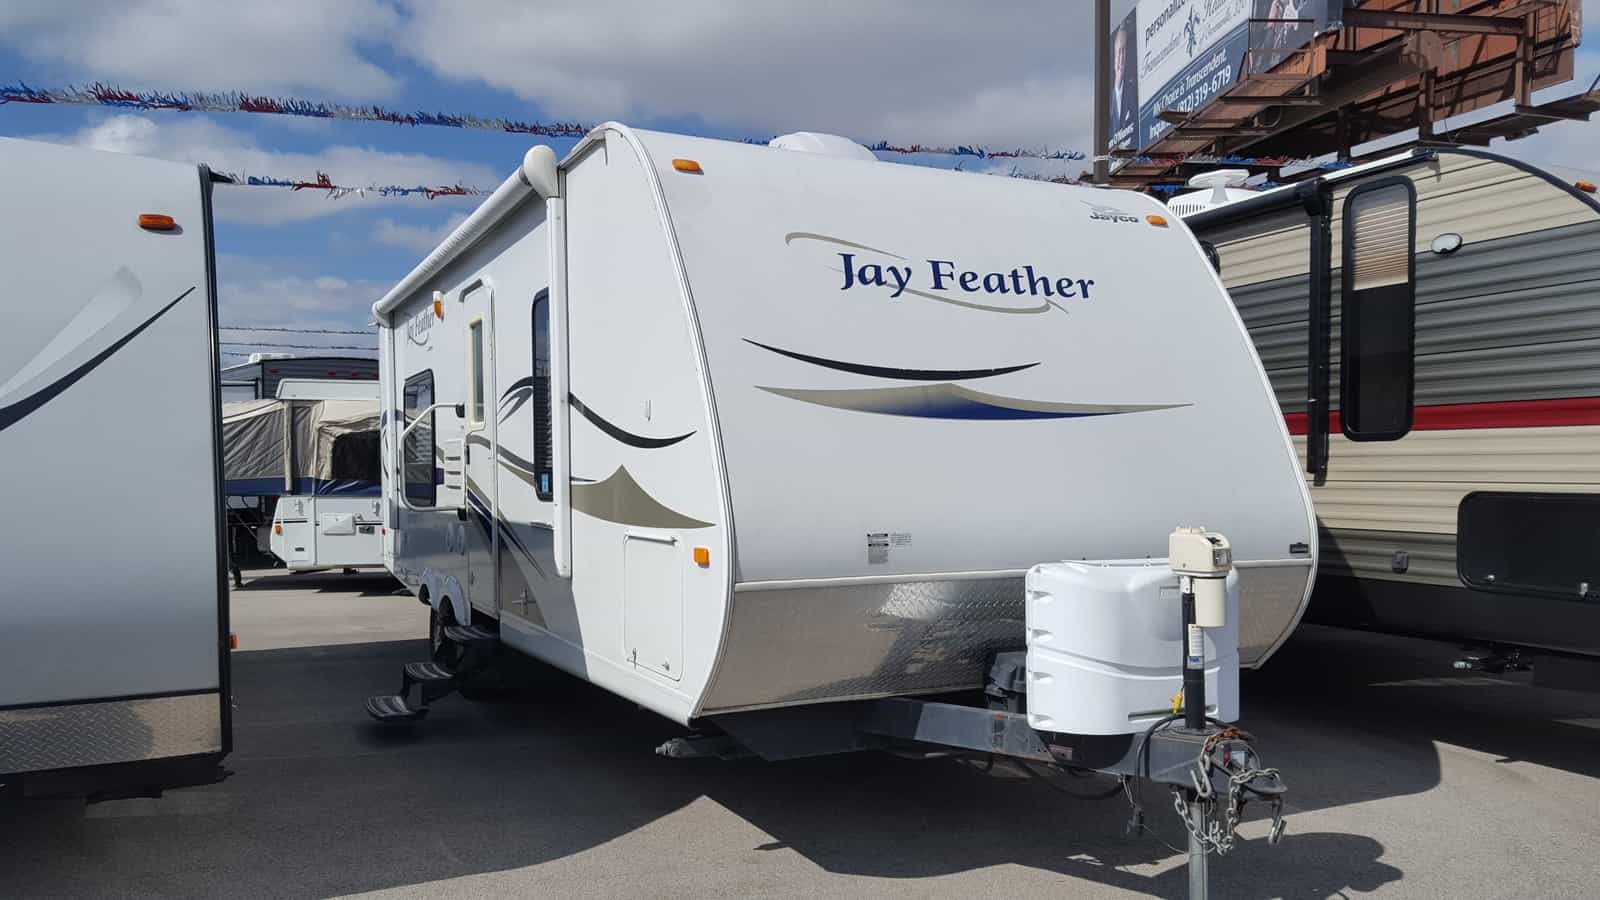 USED 2010 Jayco JAY FEATHER 24T - American RV